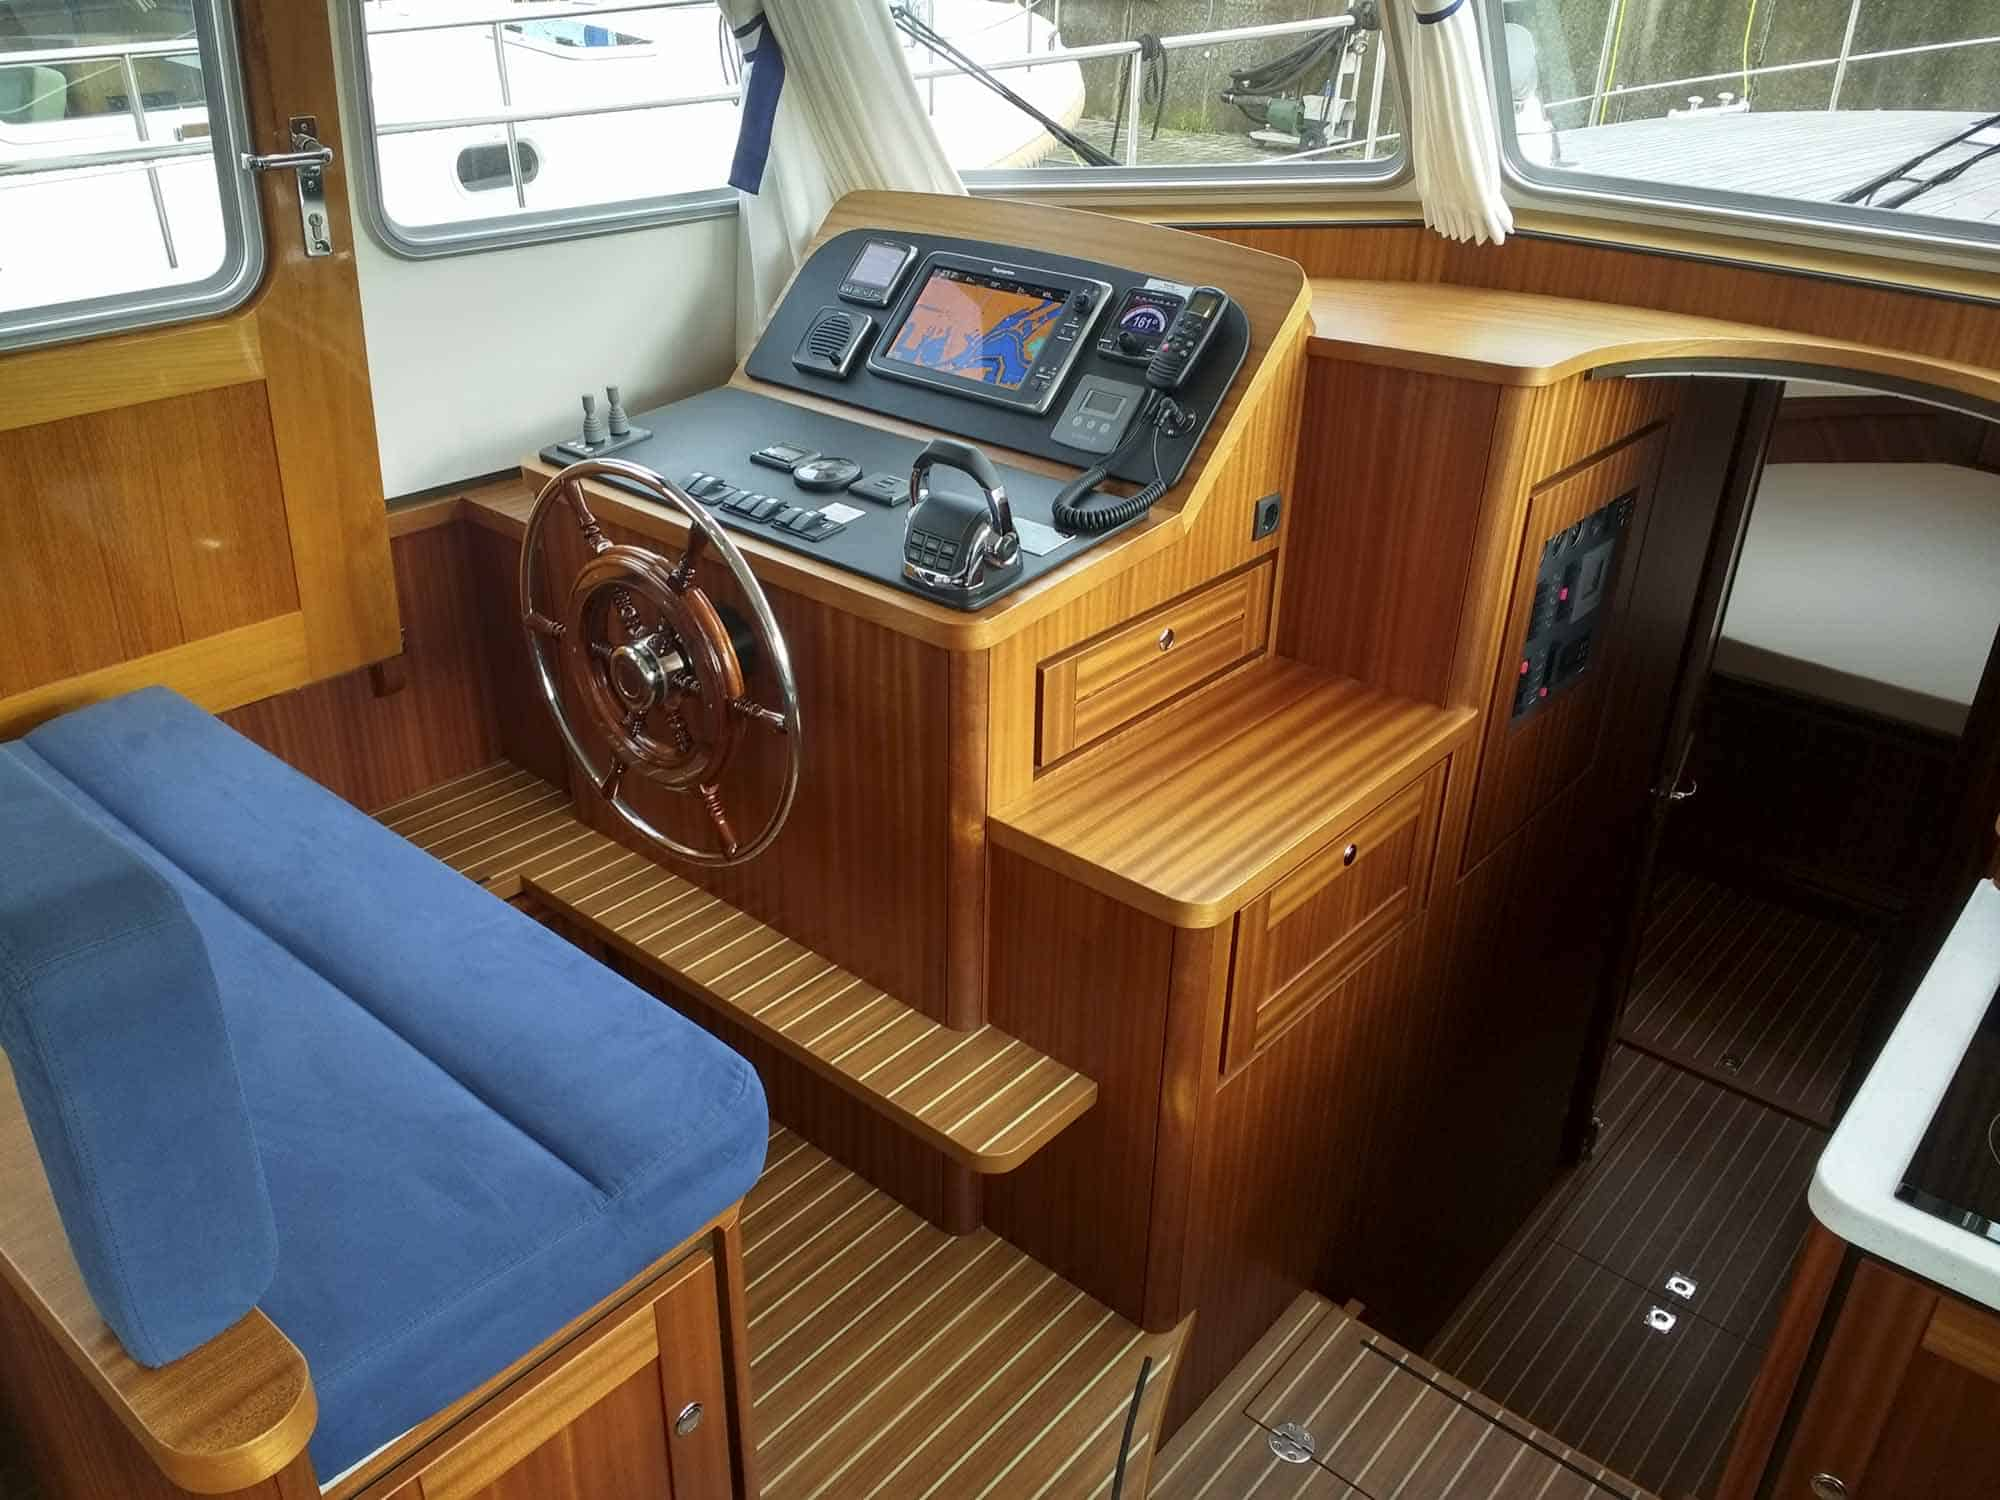 Linssen-Classic-Sturdy-410-Sedan-Deckbridge_251115-002